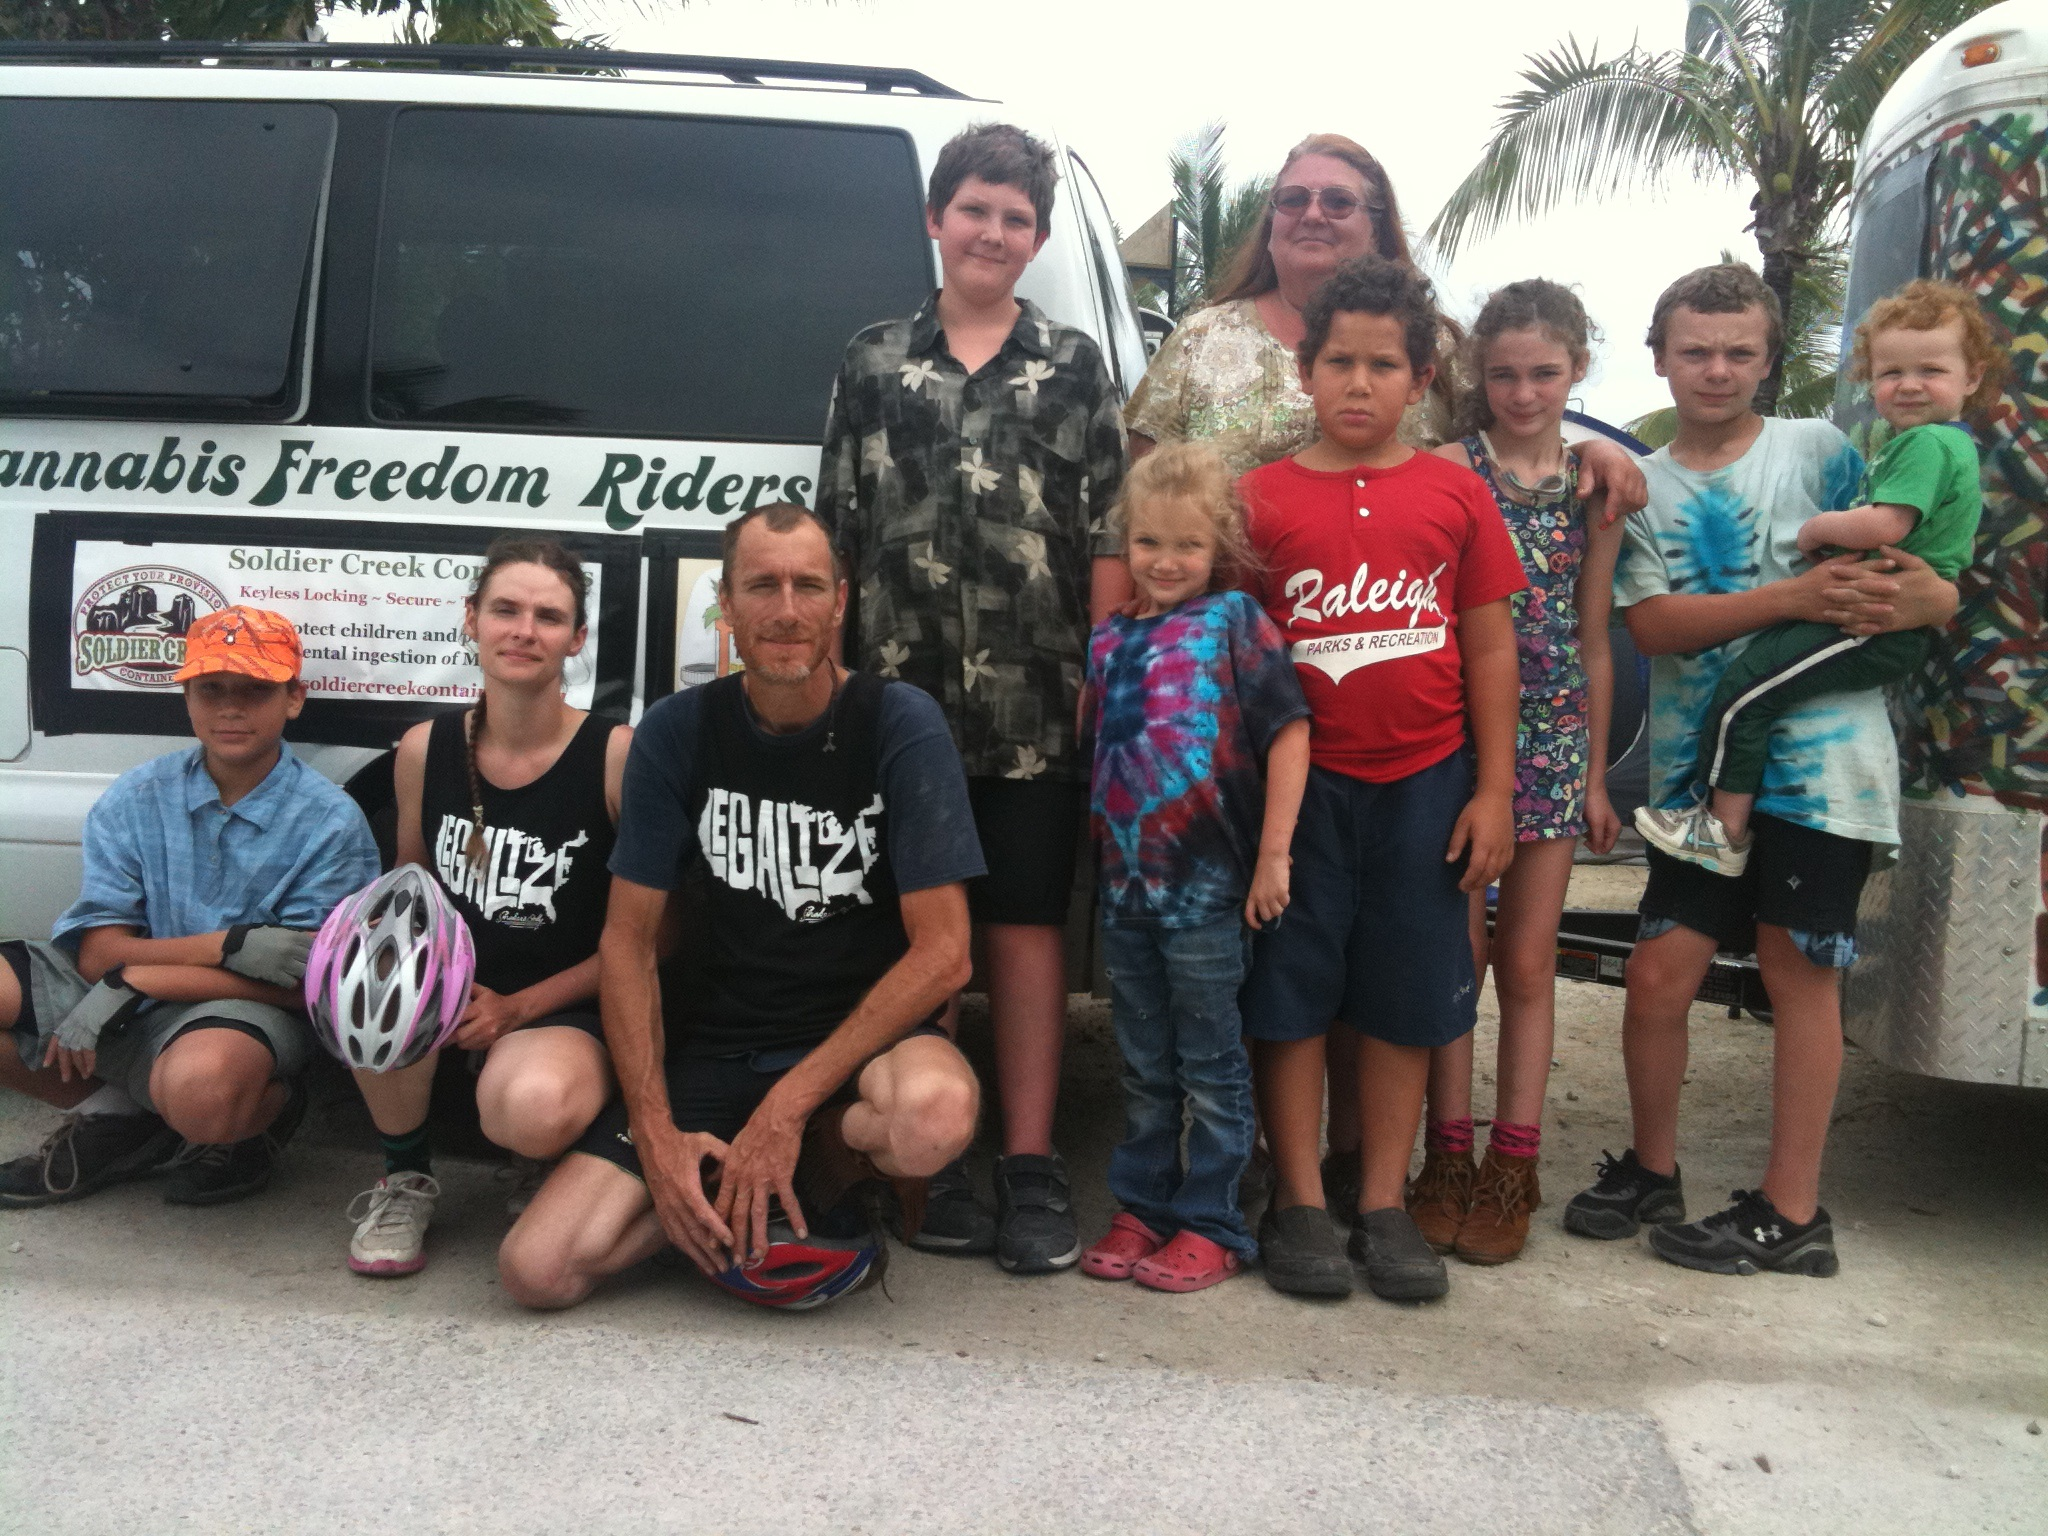 Left to Right: Dakota, Shirley and Ken Locke, Garret, Becky Keith, Electra, Matthew, Ariel, David, Xavier